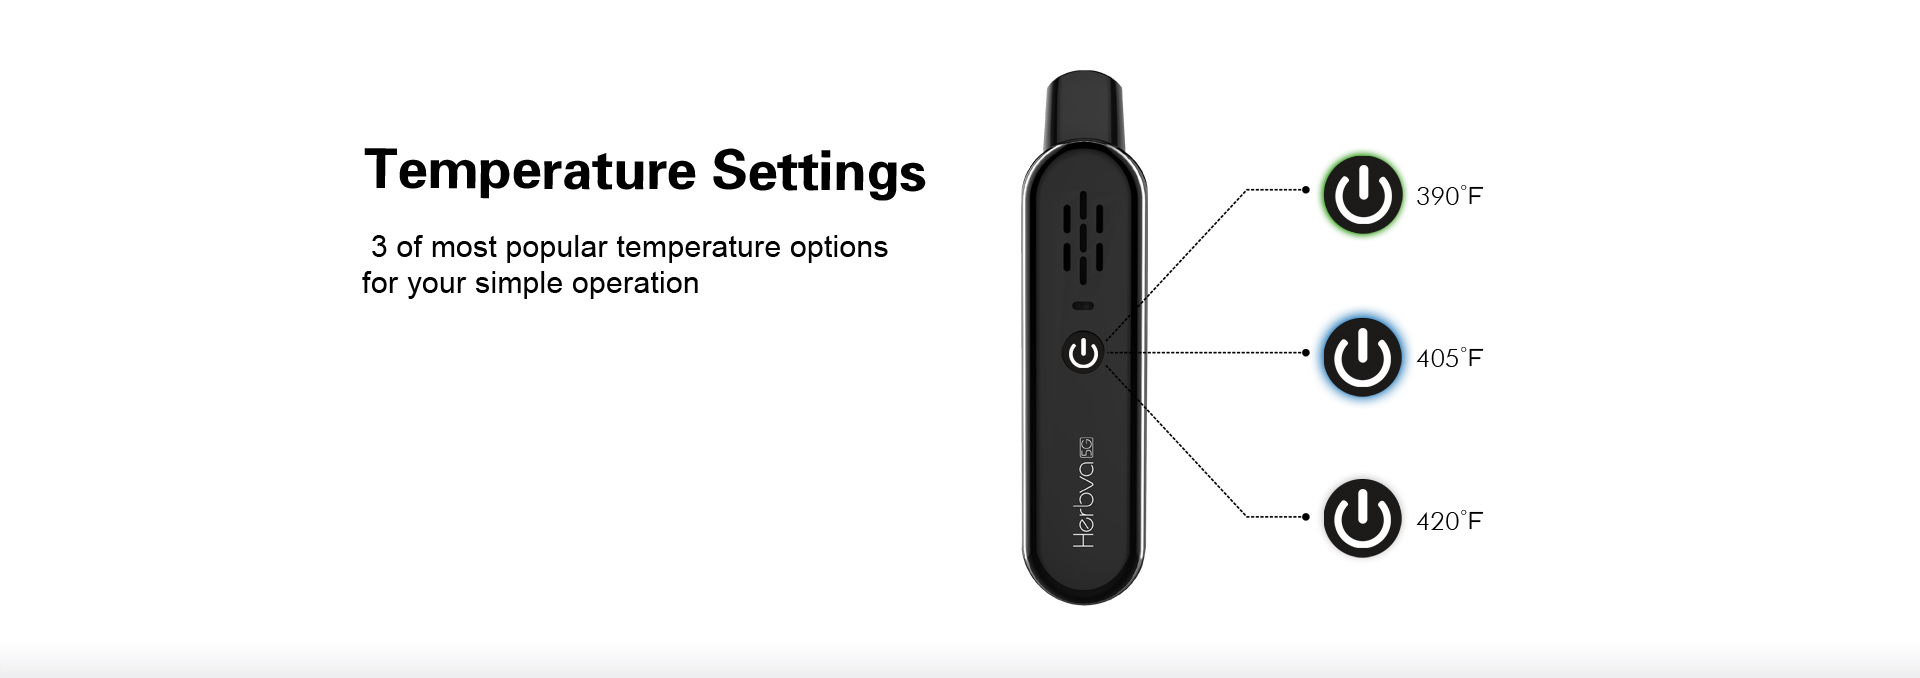 Airistech Herbva 5G Vaporizer Temperature Settings